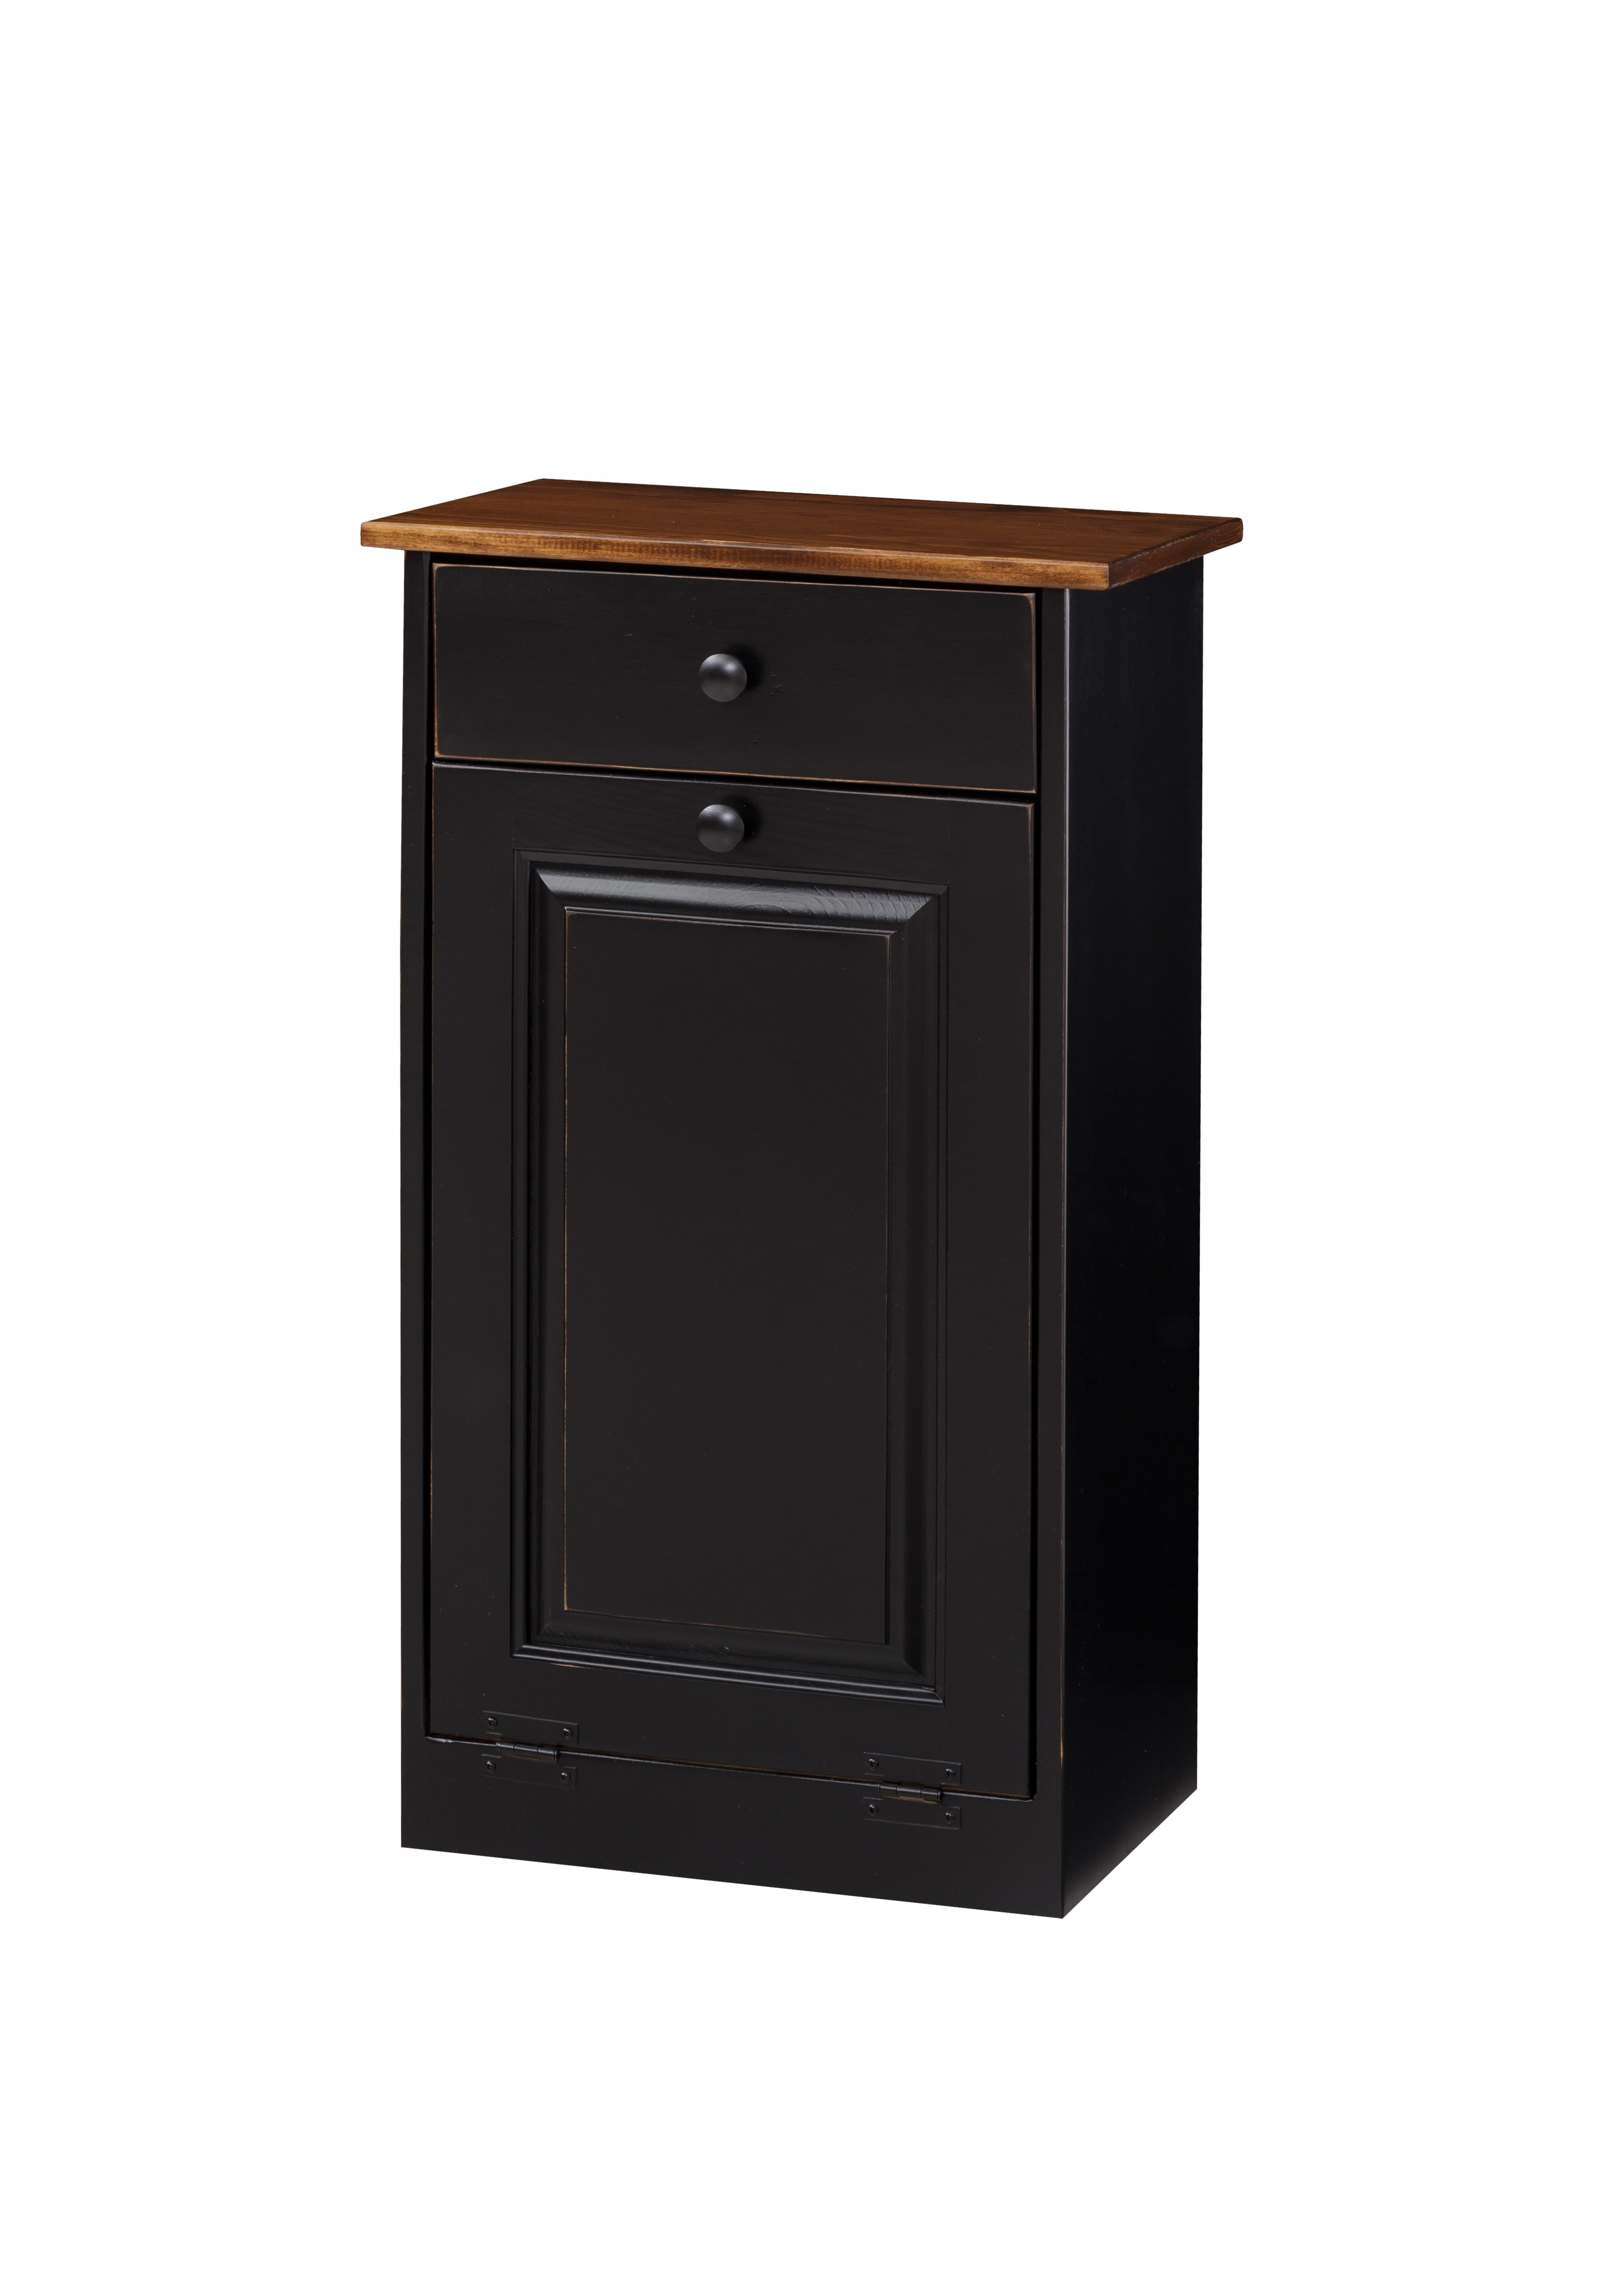 Trash Cabinet with Raised Panel & Drawer